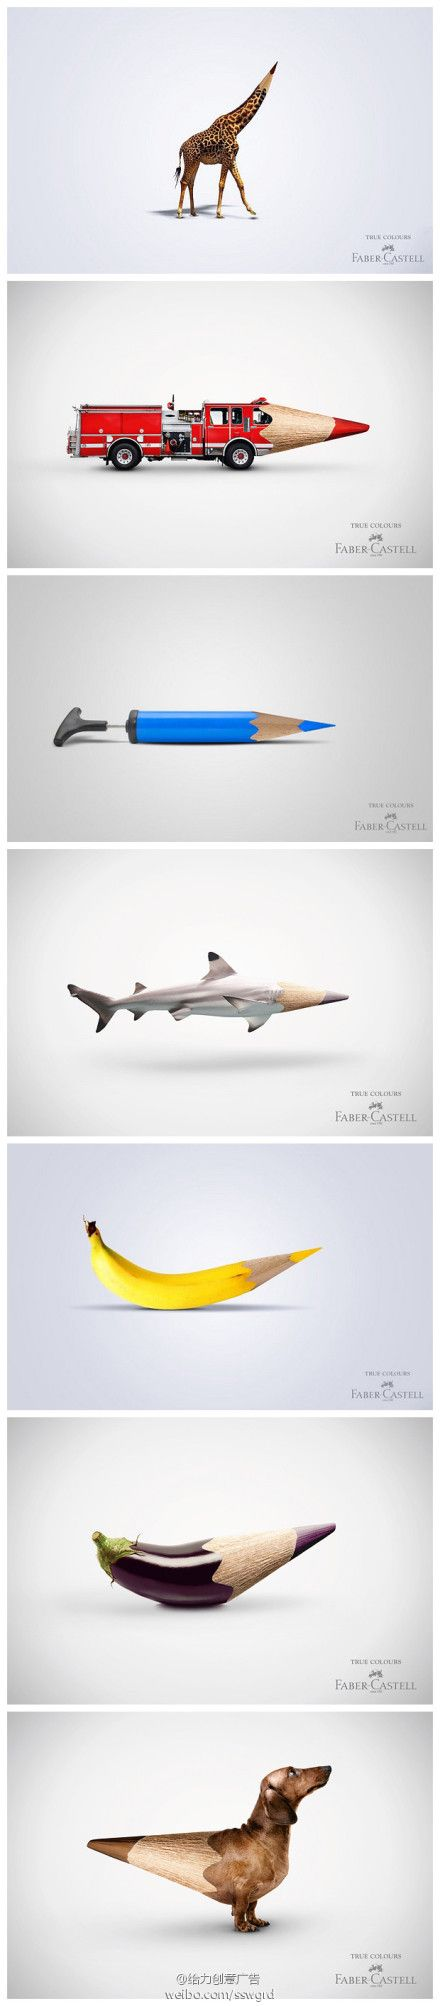 "Faber-Castell  ""True Colours"" #ad"